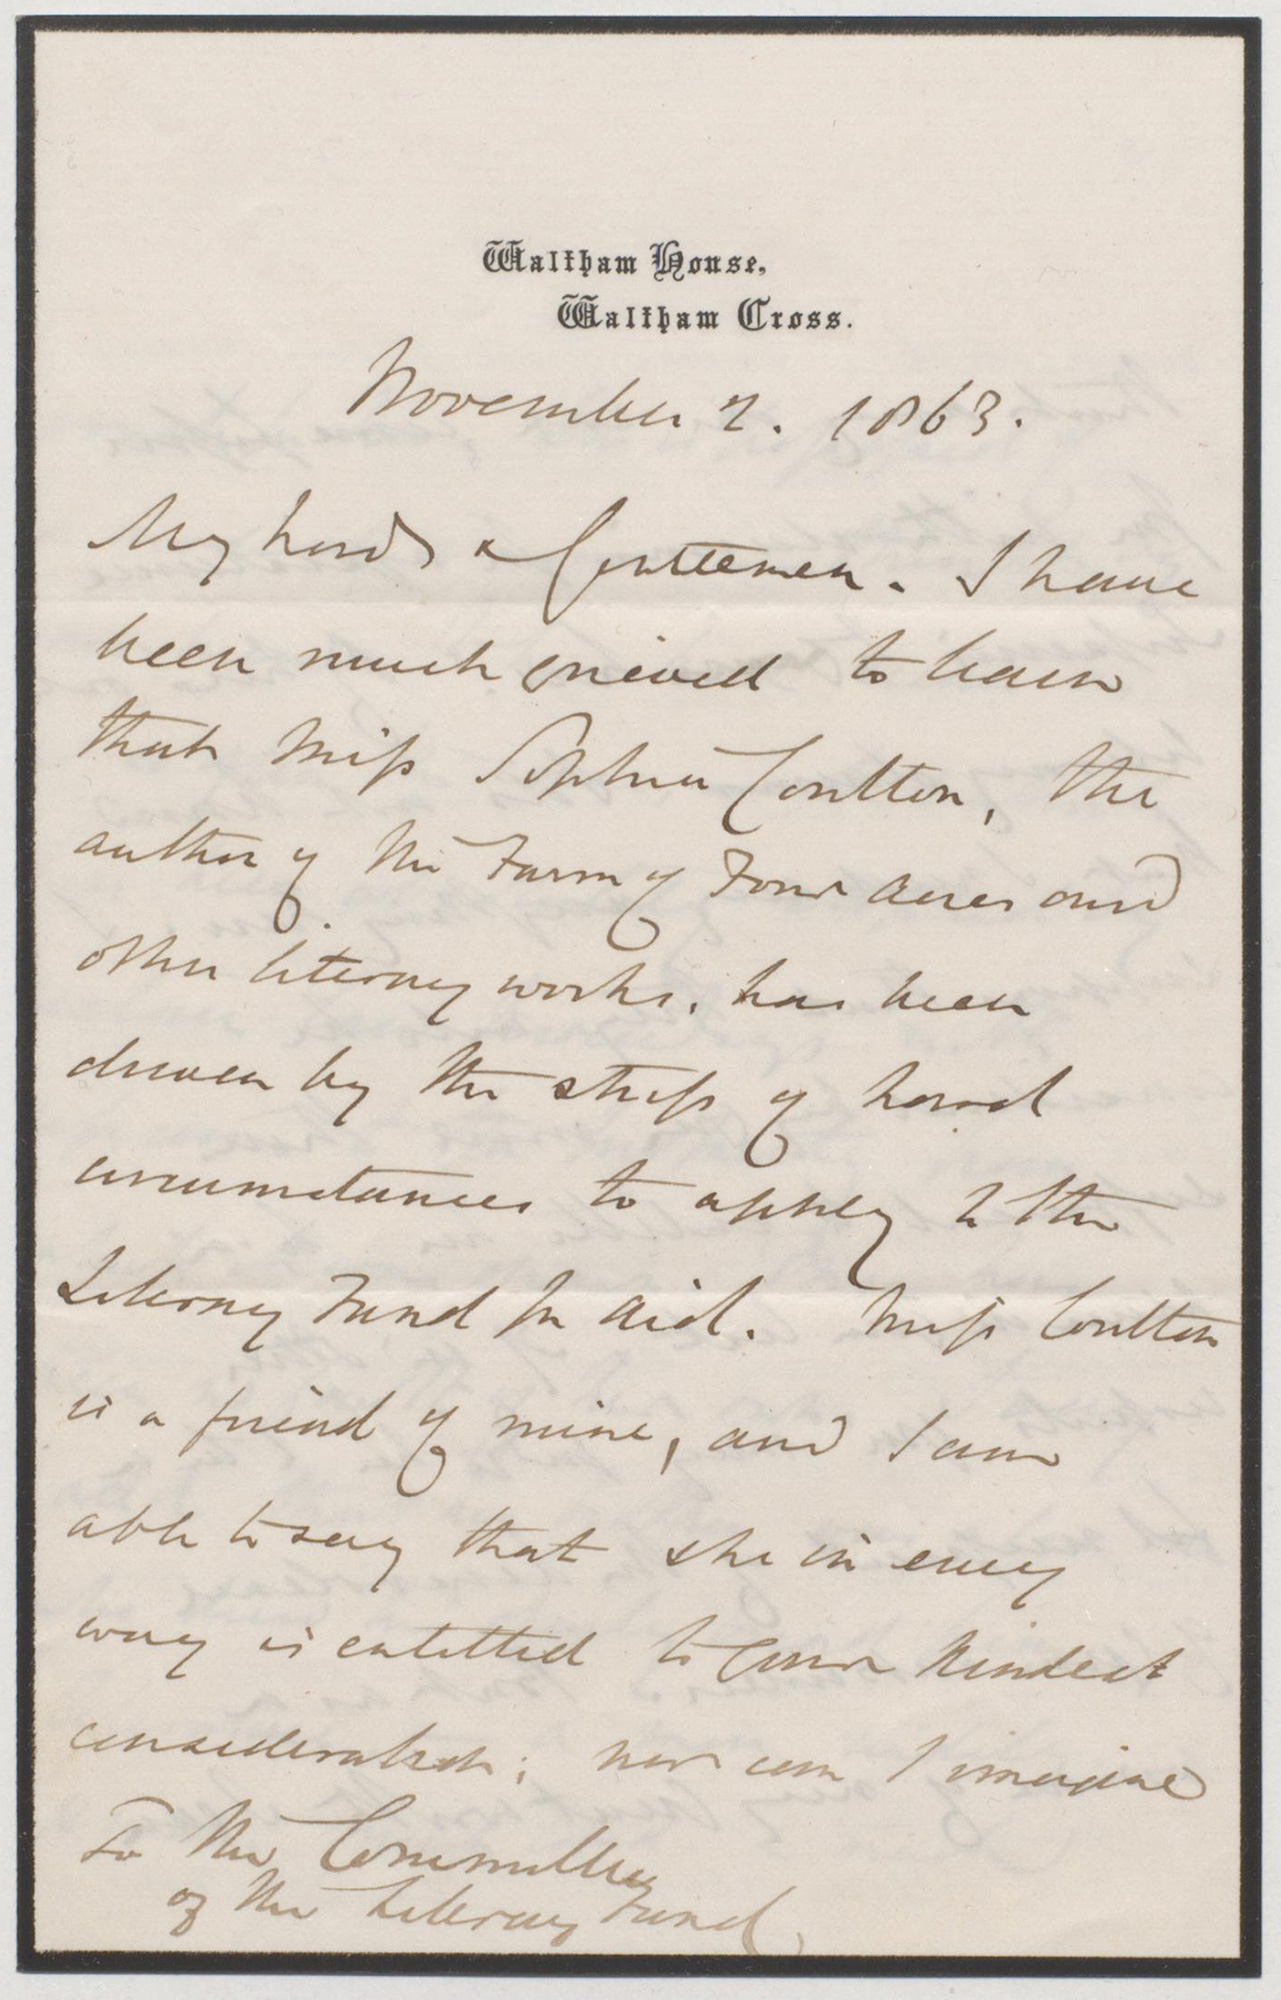 Letter from Anthony Trollope in support of Sophia Coulton